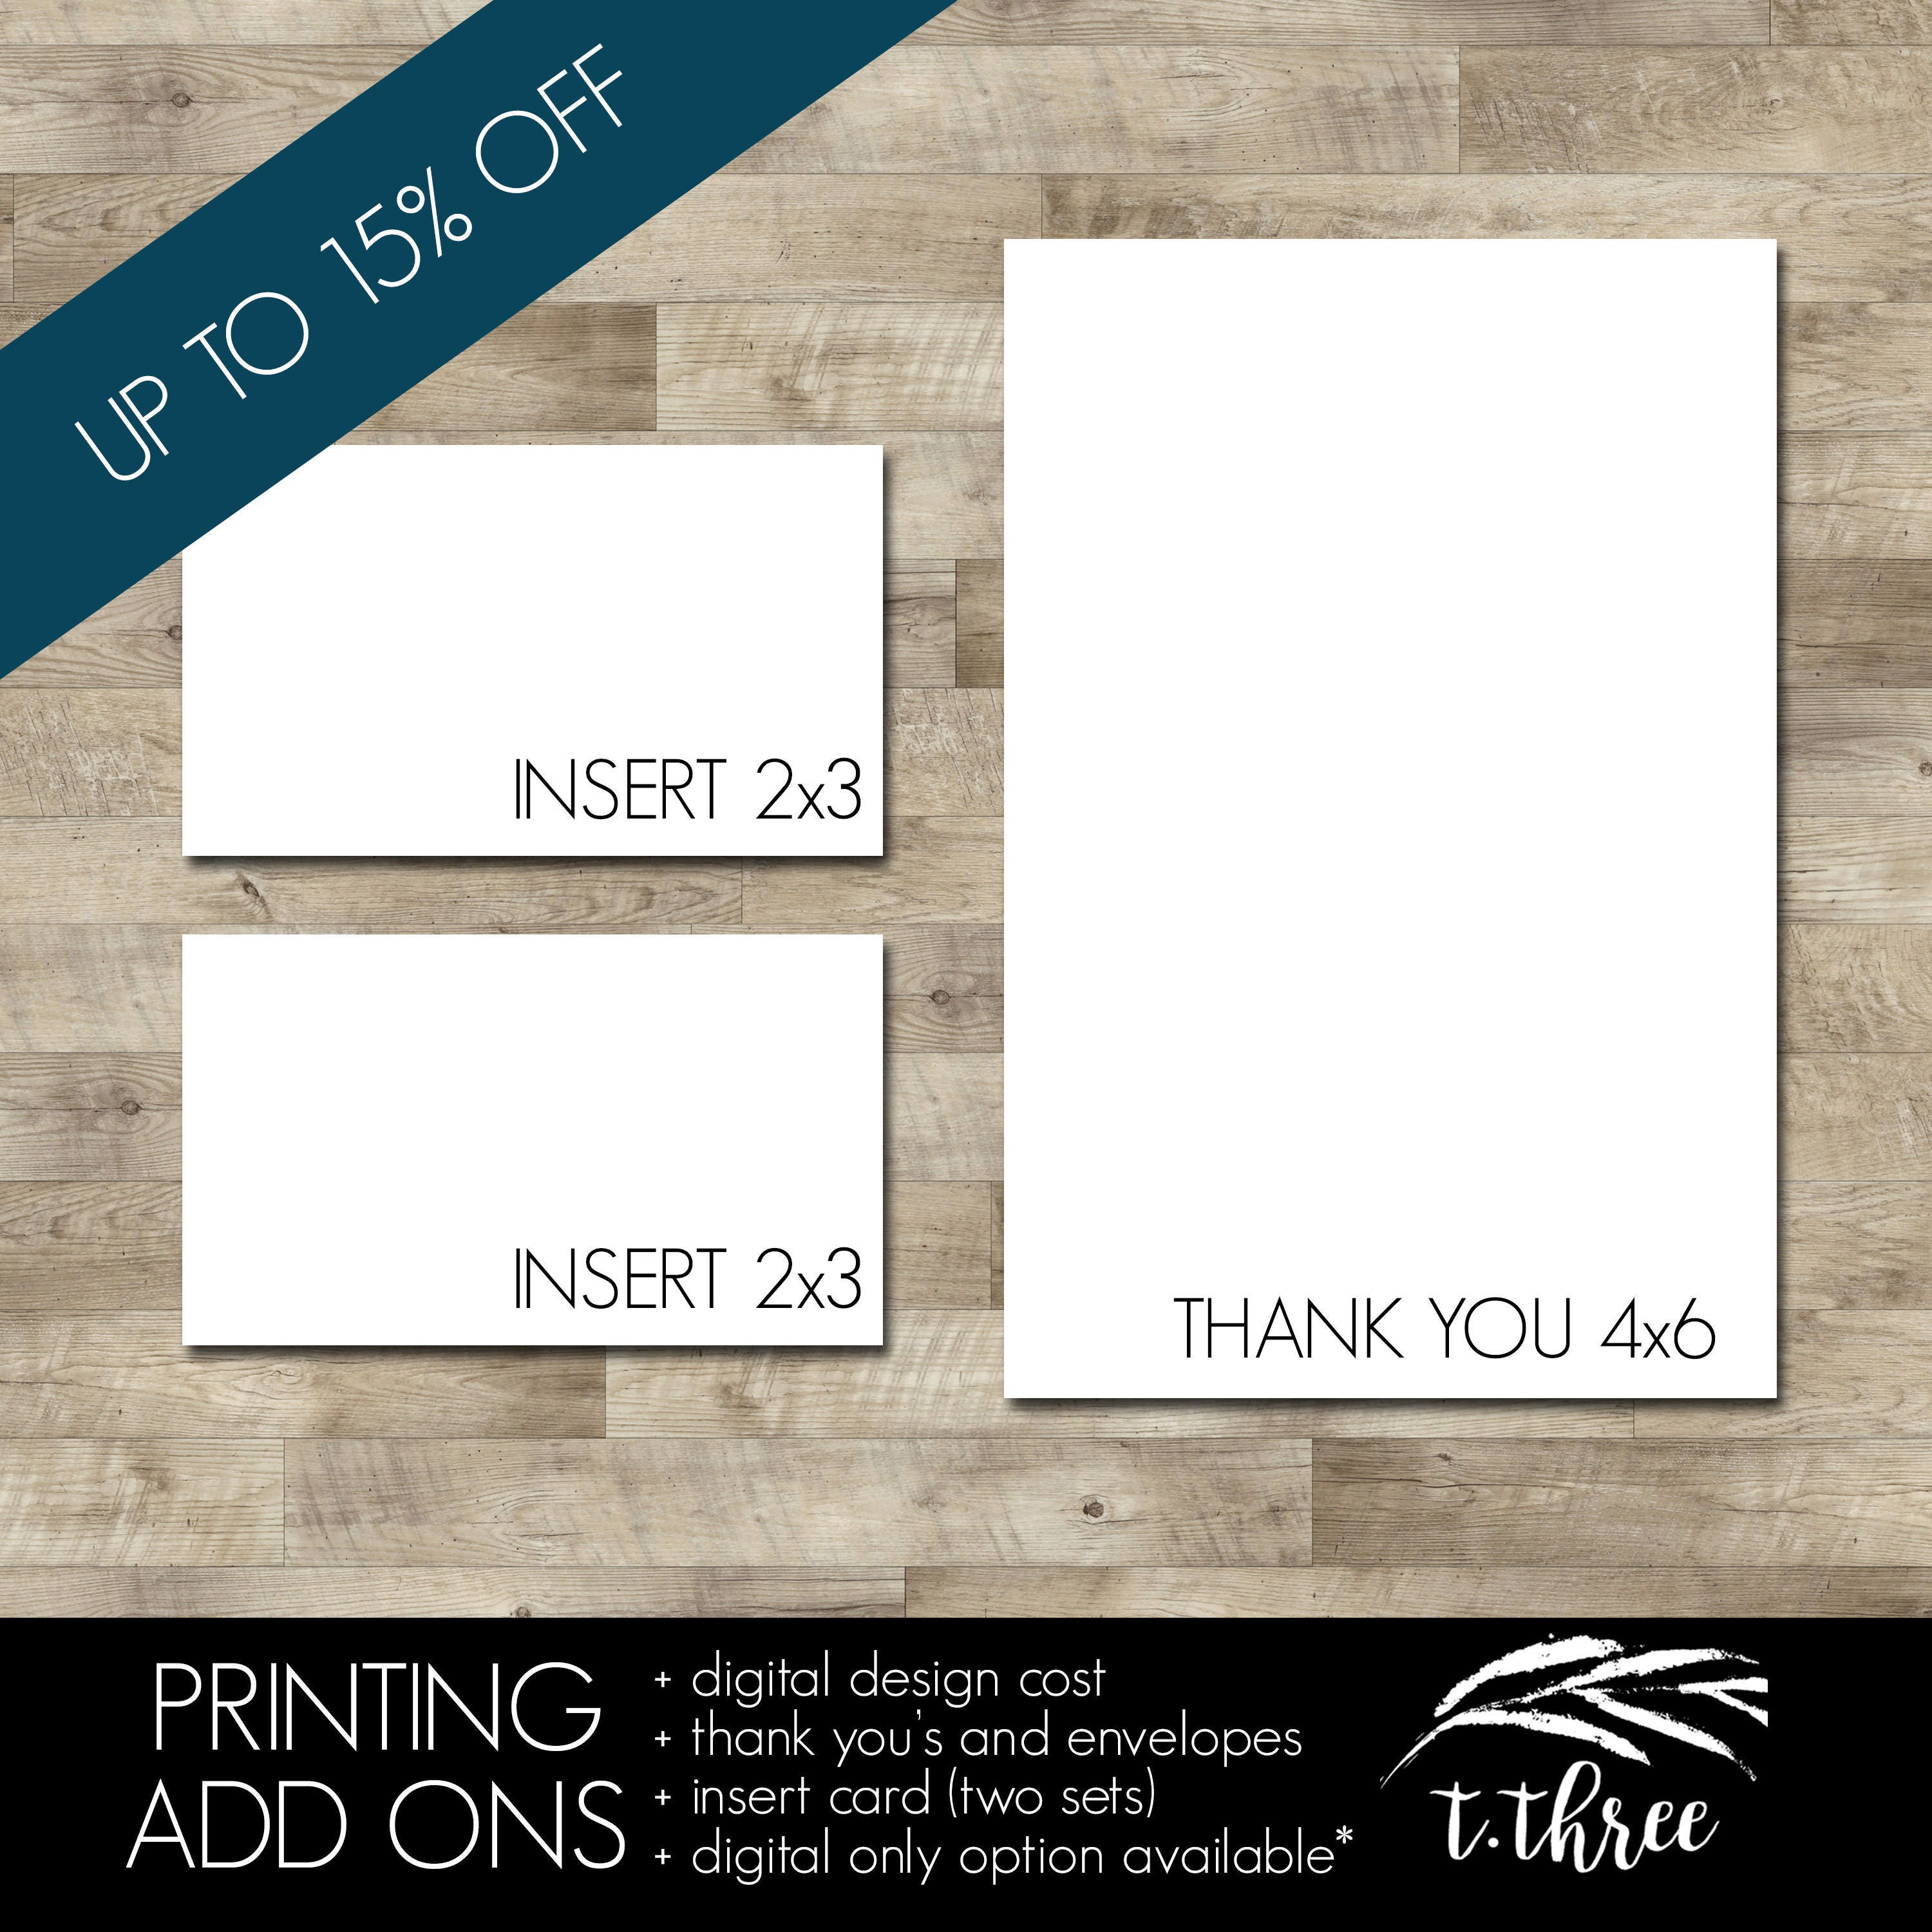 Professionally Printed Thank You Cards With Envelopes And Two Sets